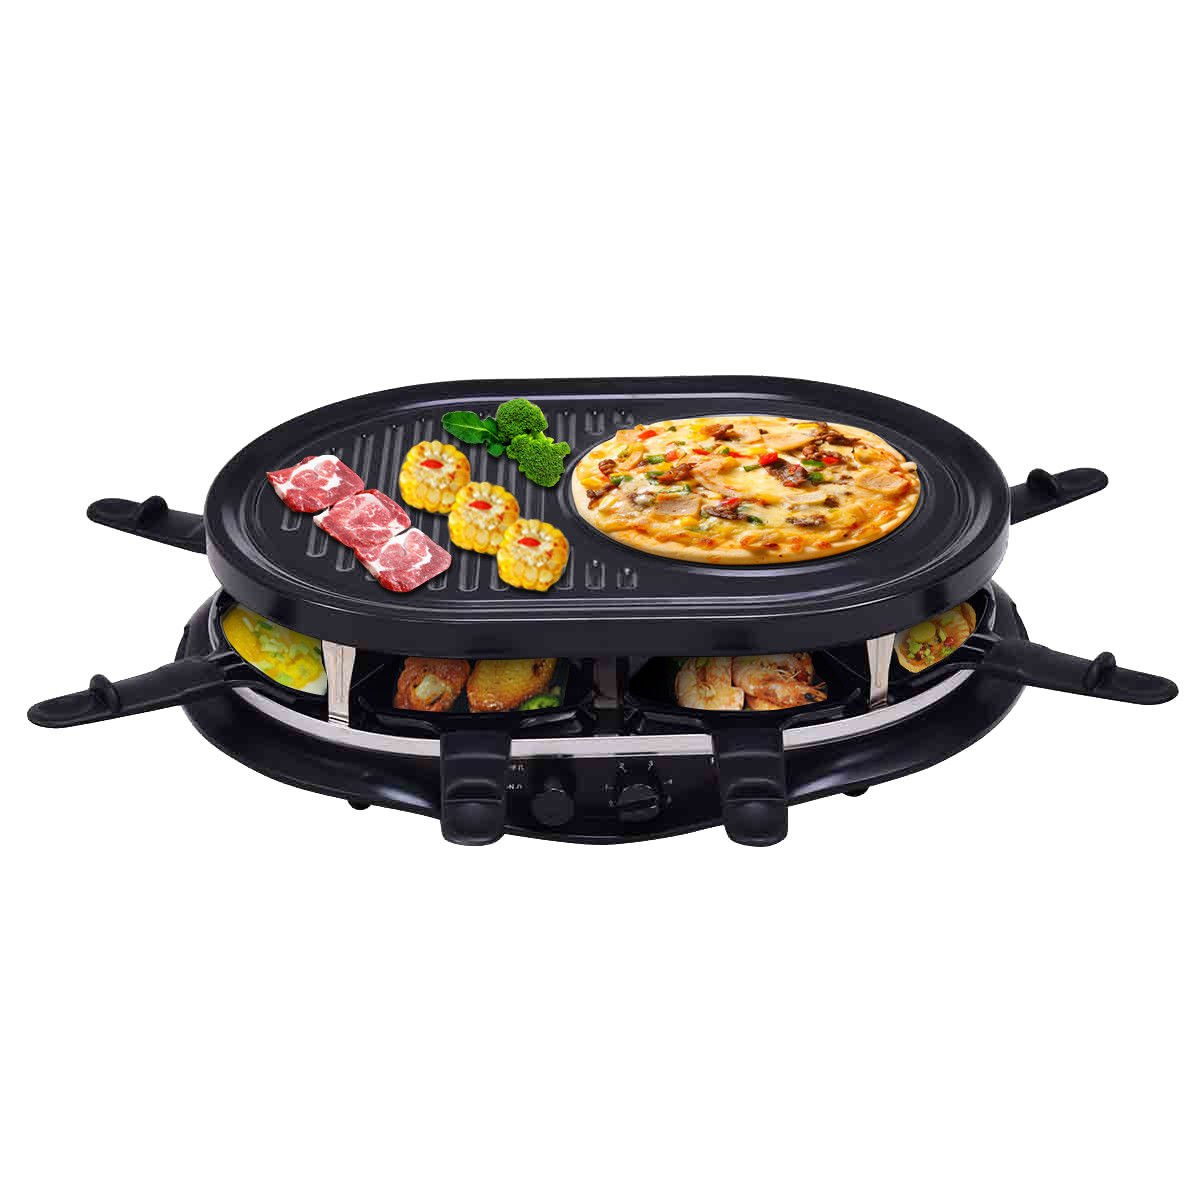 Costzon Raclette Grill, 1200W for 8 People Non Stick Grill Plate